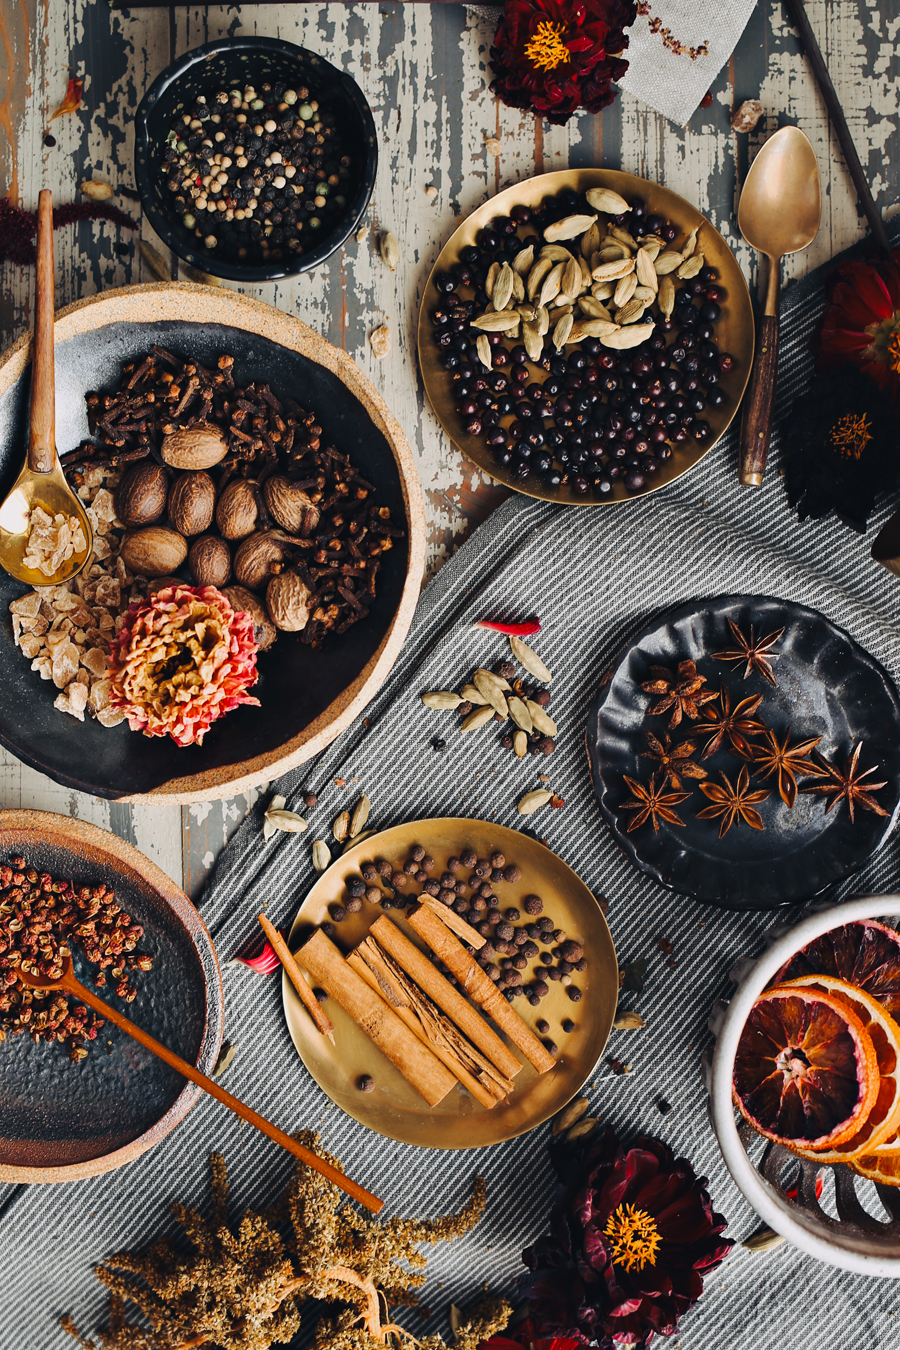 01_Mulling Spice Blends | Dine X Design.jpg